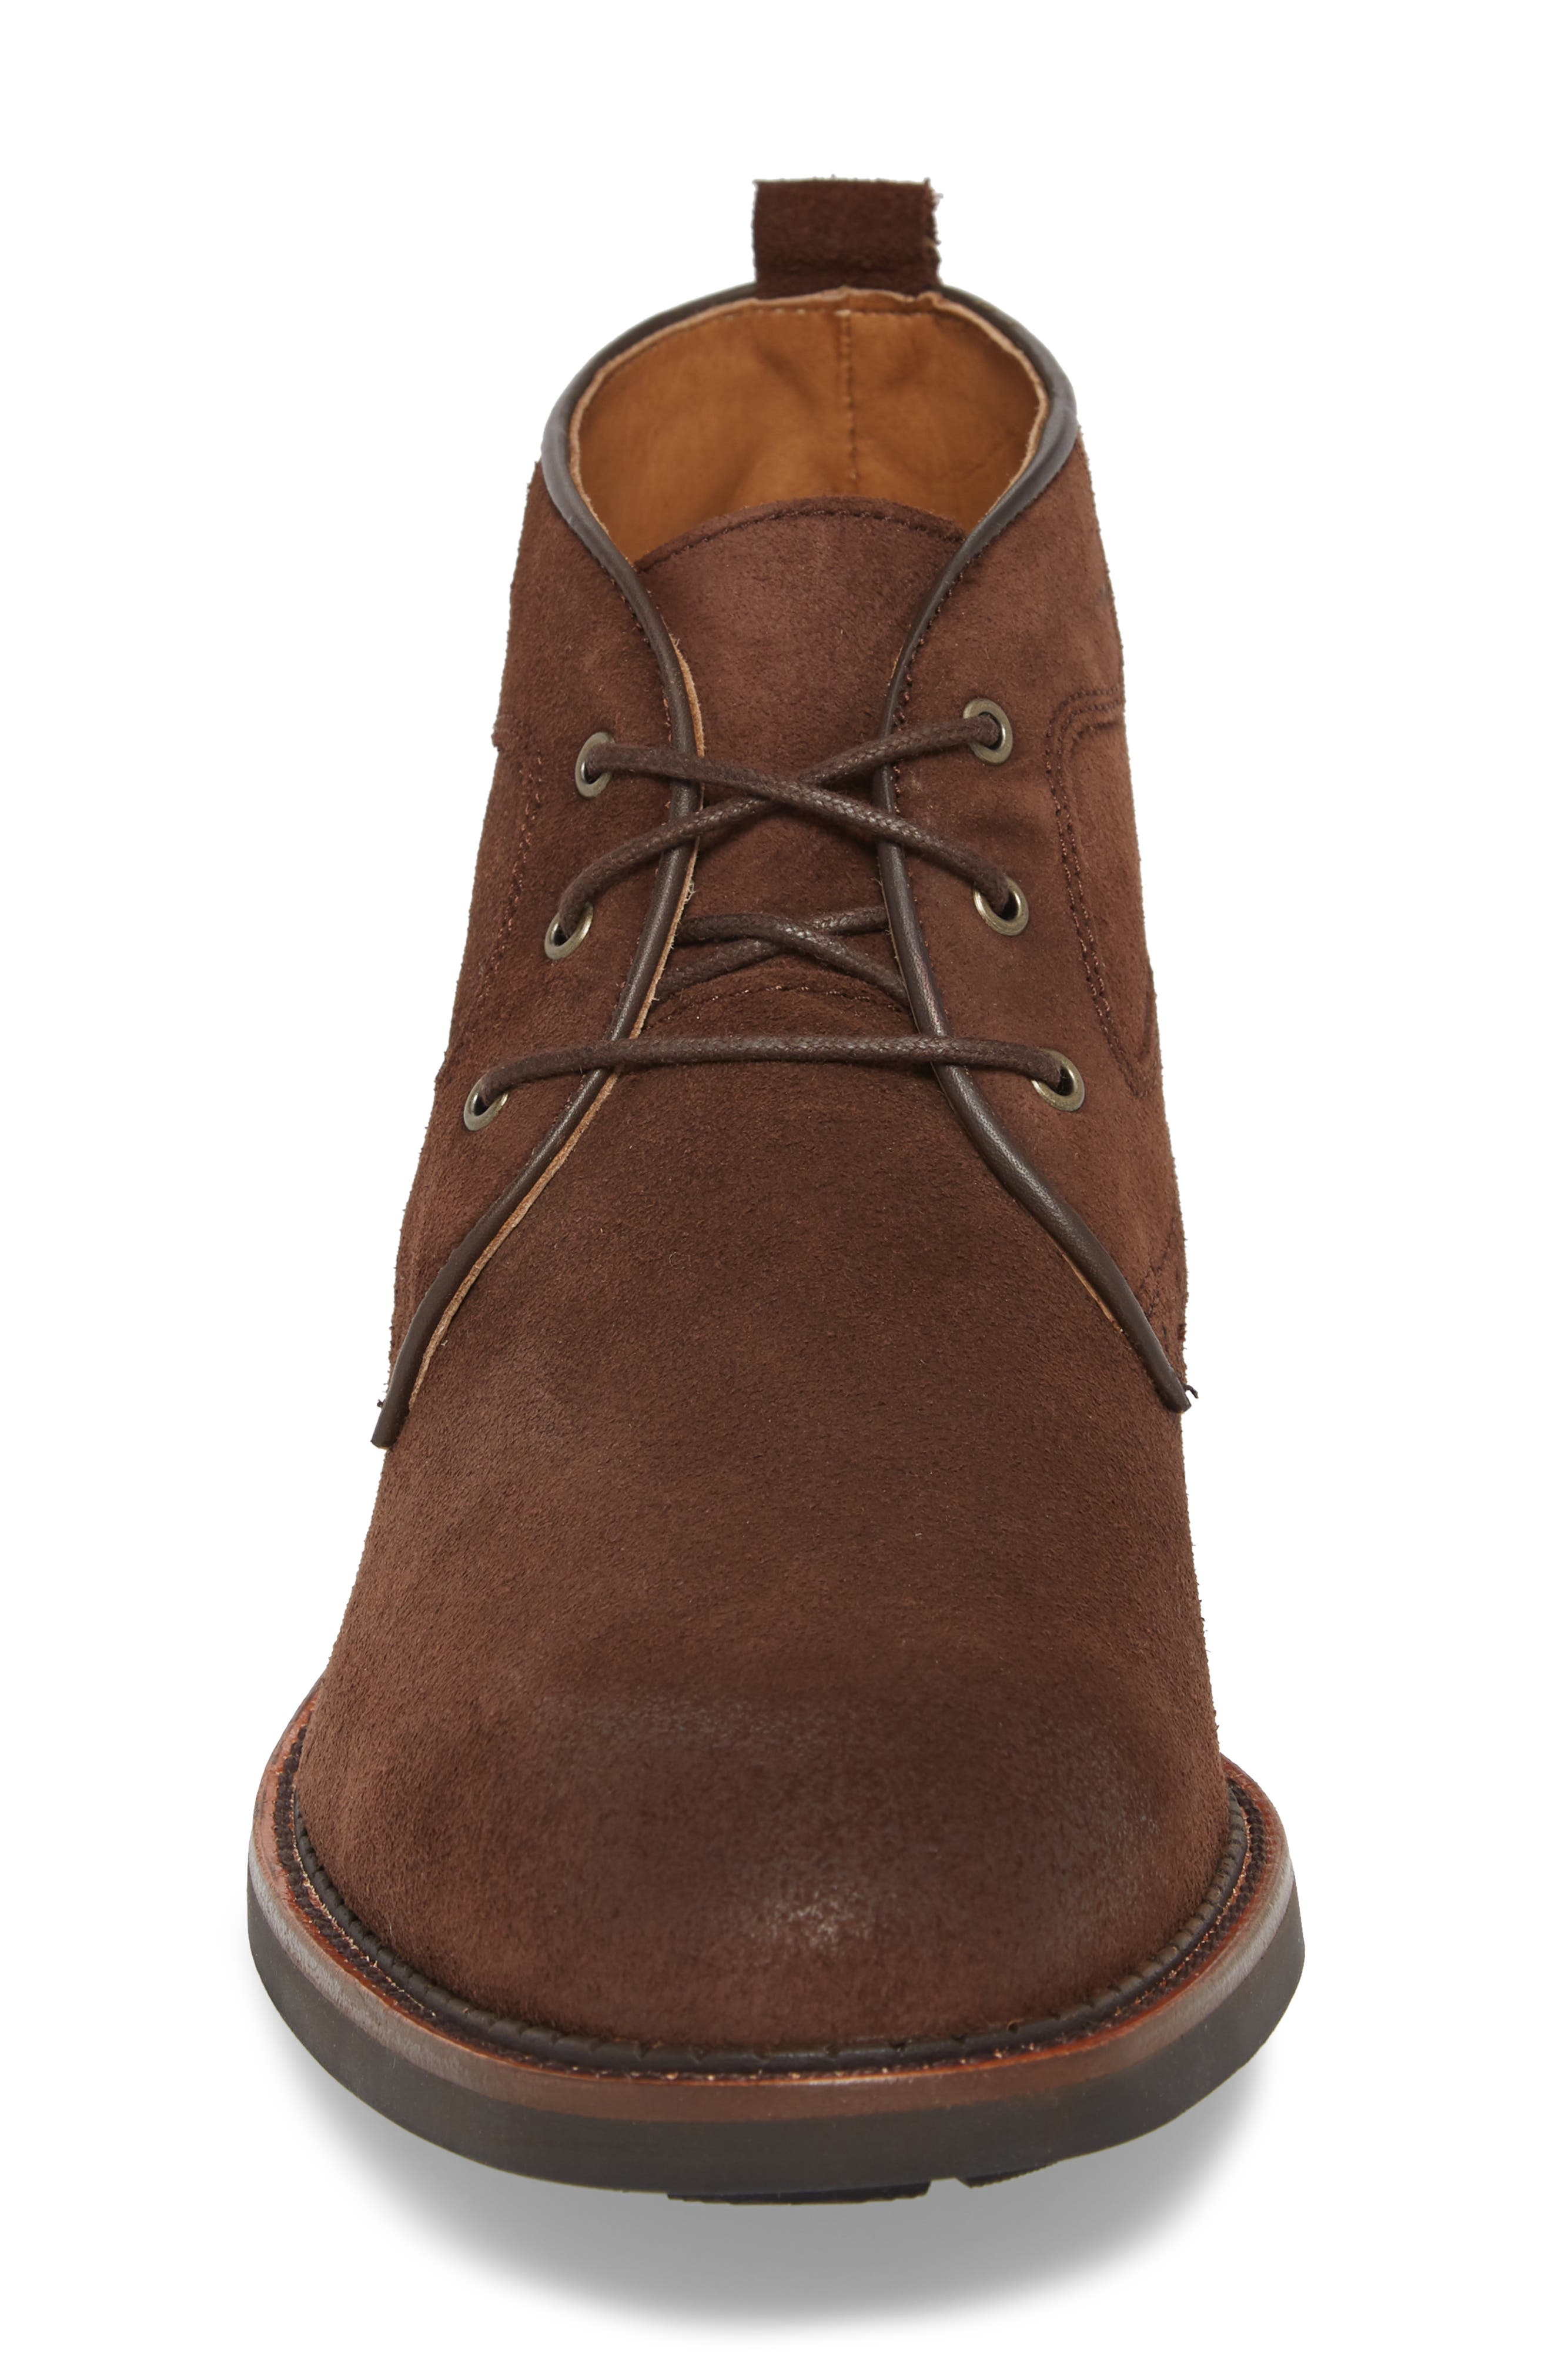 Fullerton Chukka Boot,                             Alternate thumbnail 4, color,                             DARK BROWN